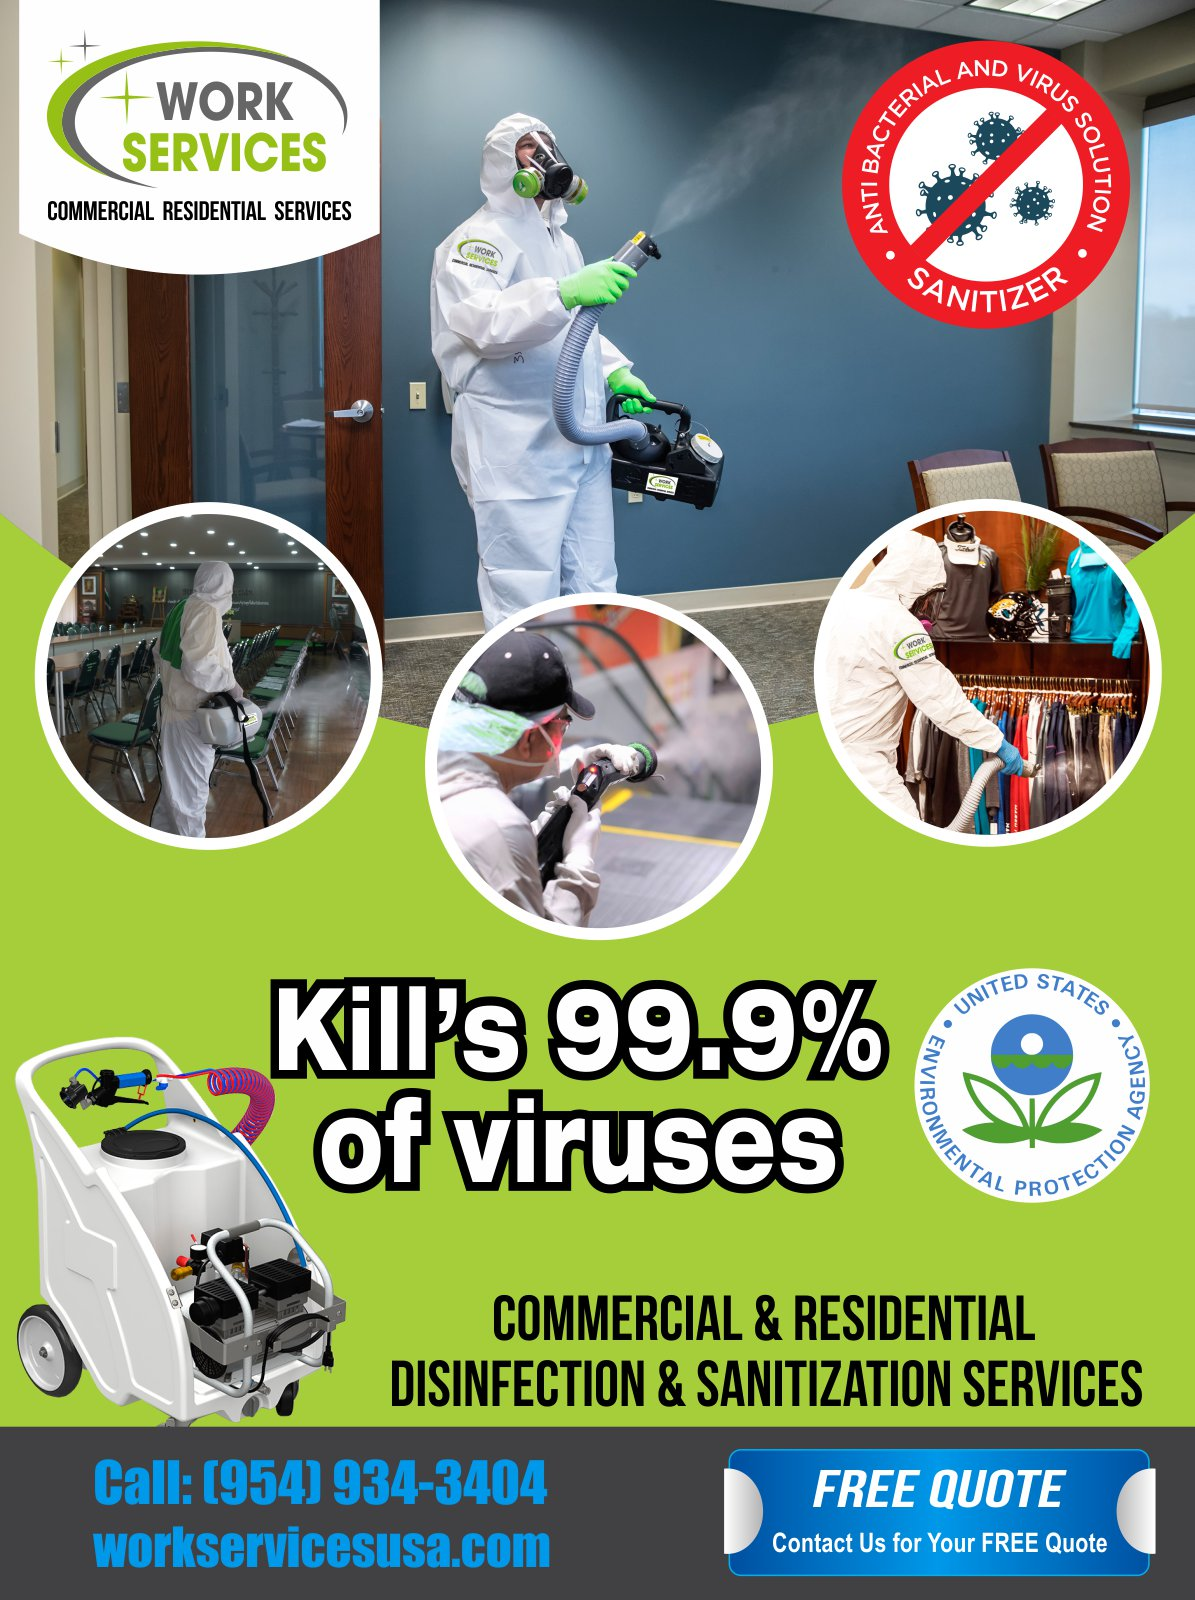 sanitize and disinfect surfaces and environments